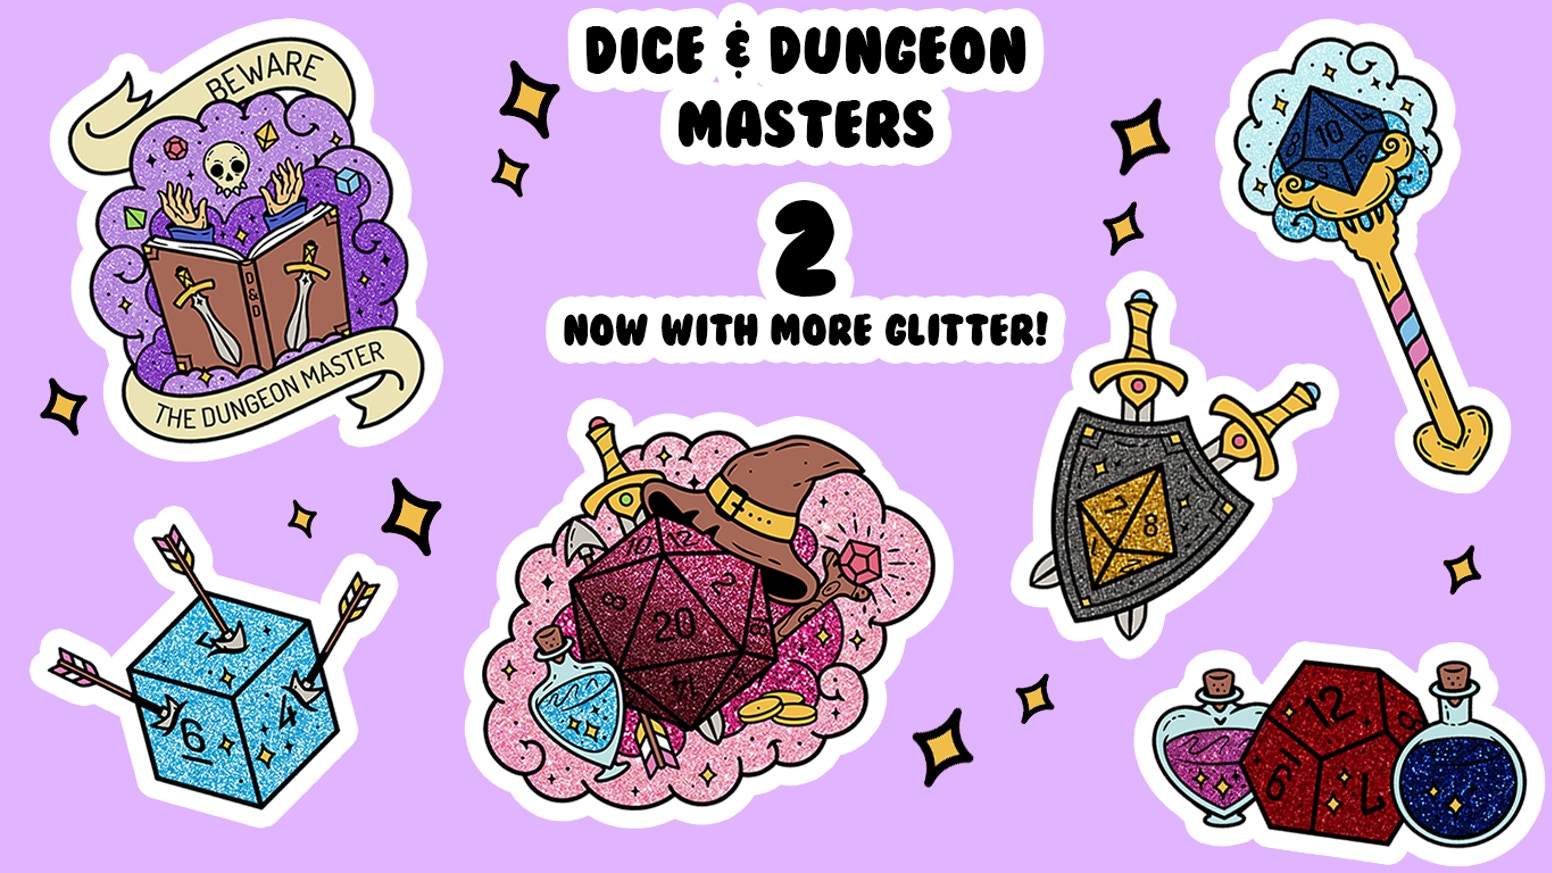 Second Run Of The Dice & Dungeon Master Enamel Pin Series!  This time with more glitter!